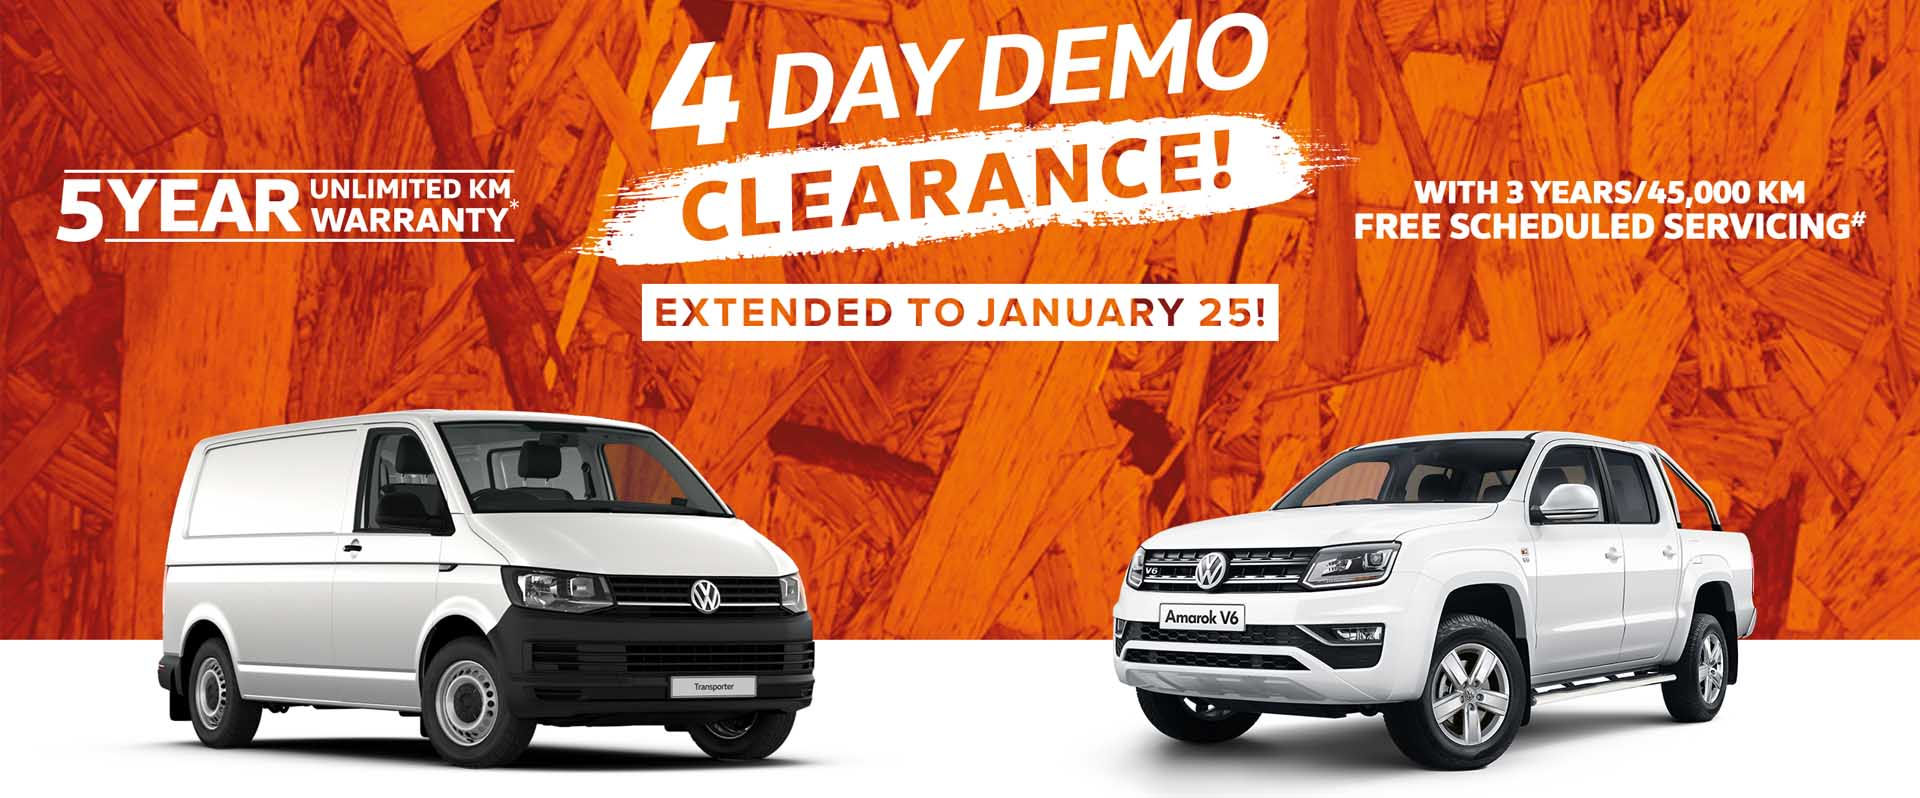 Volkswagen-4 Day Demo Clearance